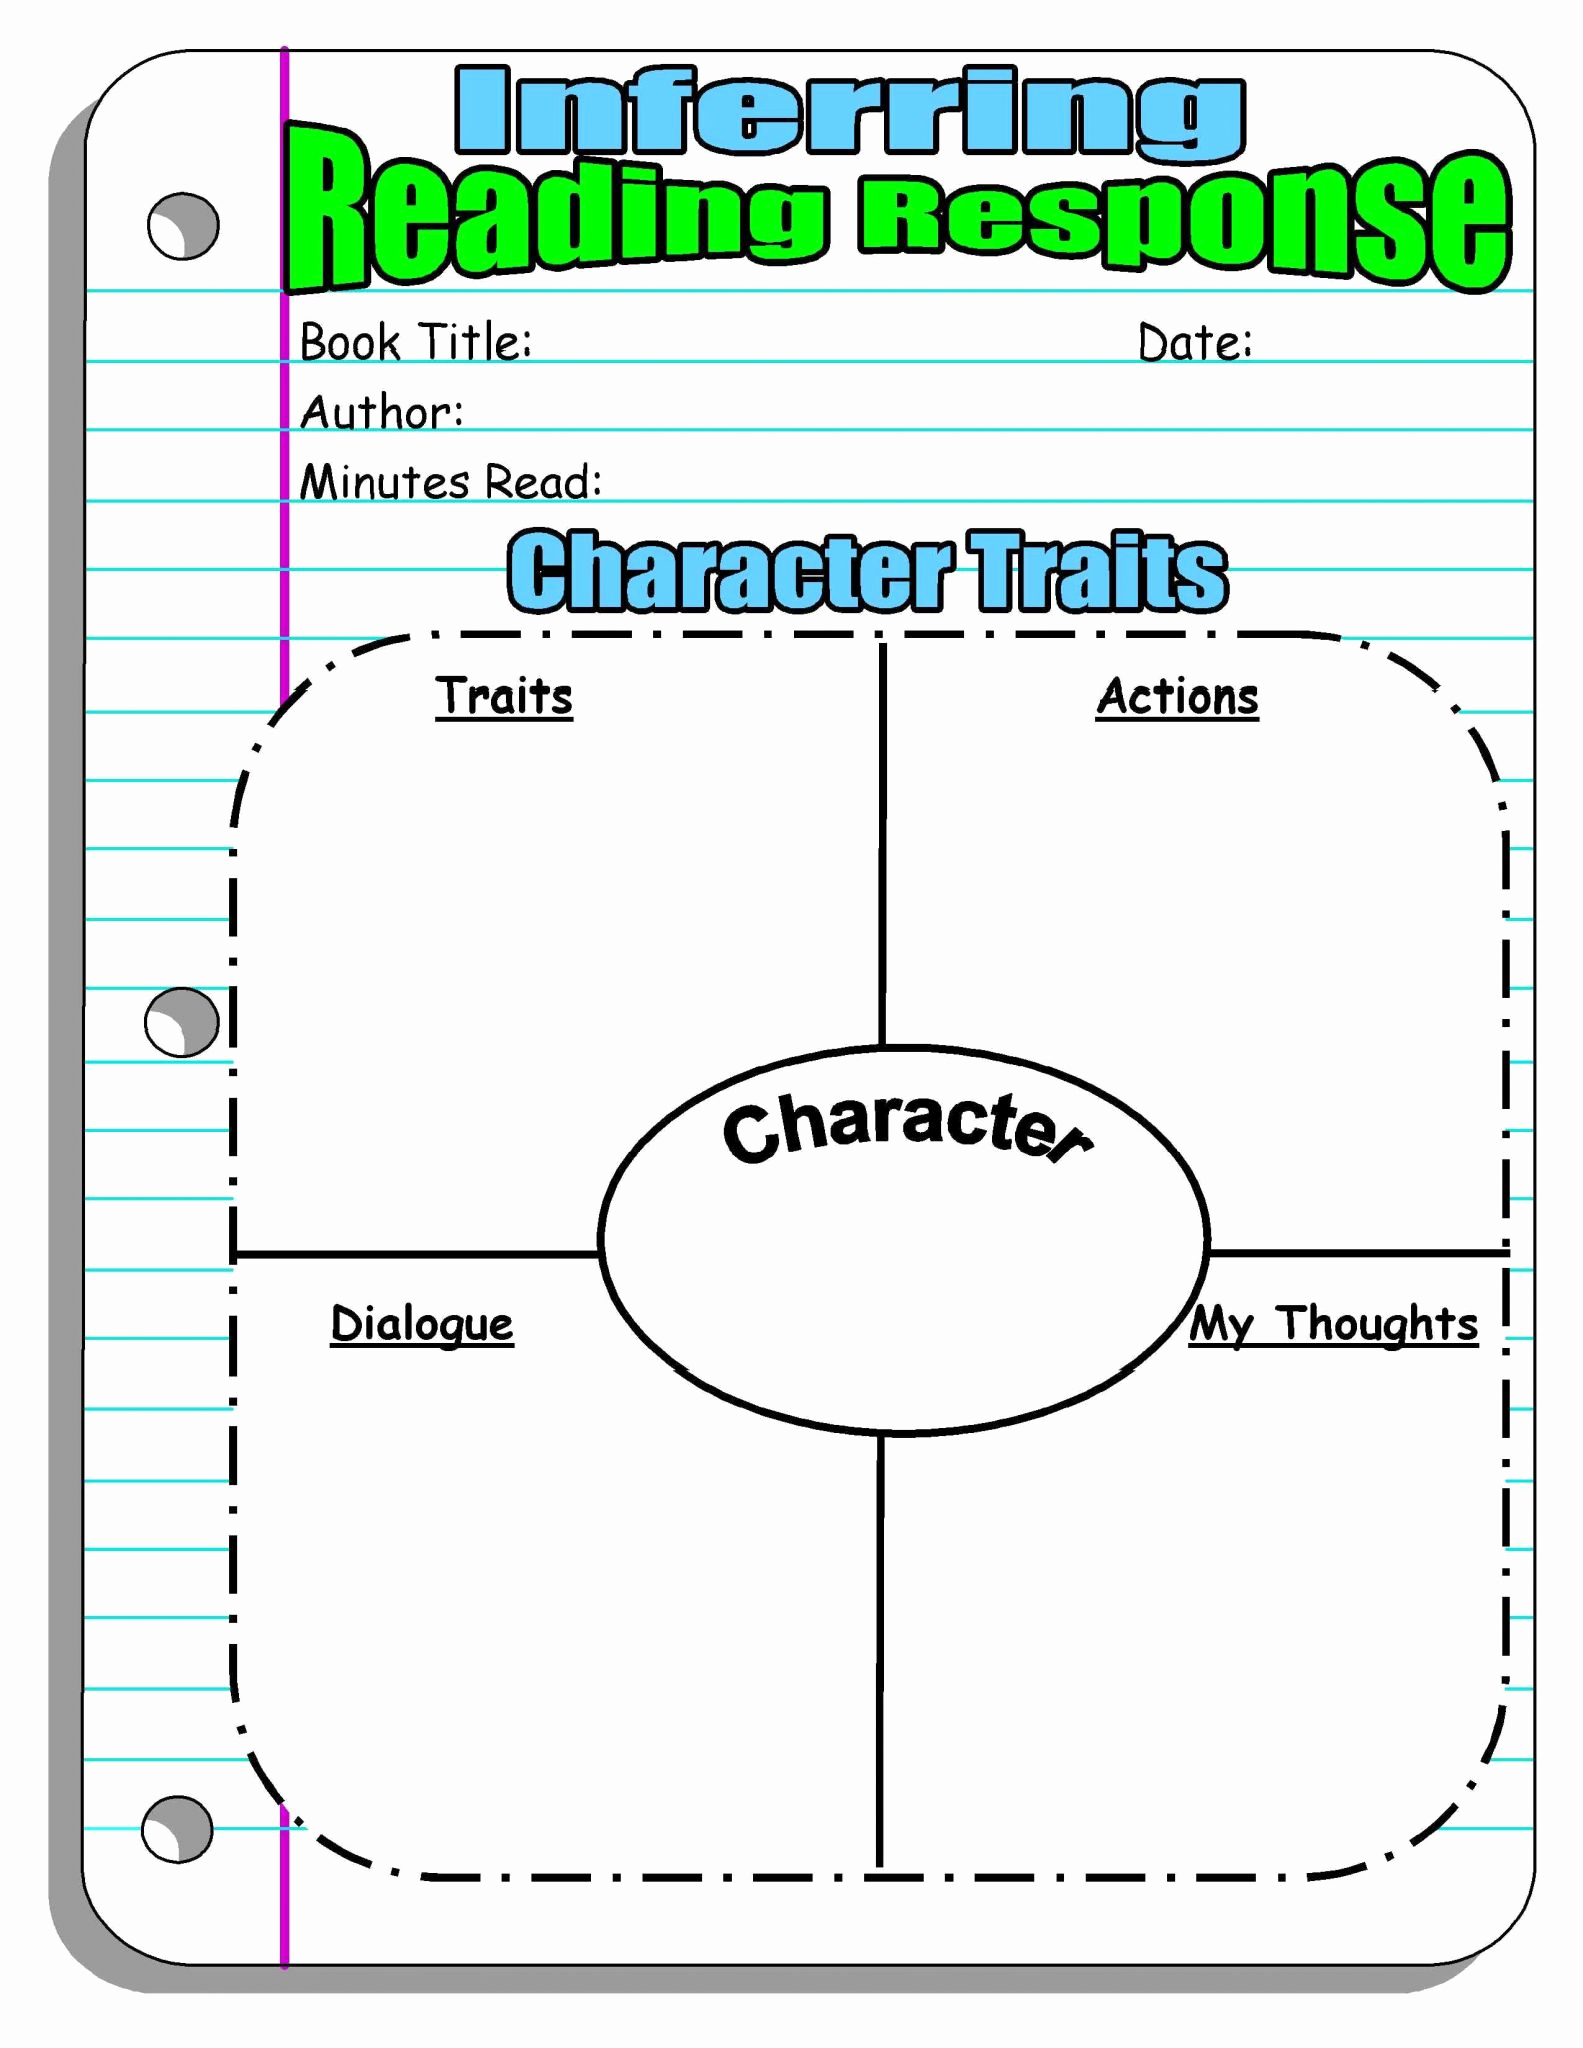 Character Traits Worksheet 2nd Grade New 2nd Grade Reading Prehension Worksheets Pdf